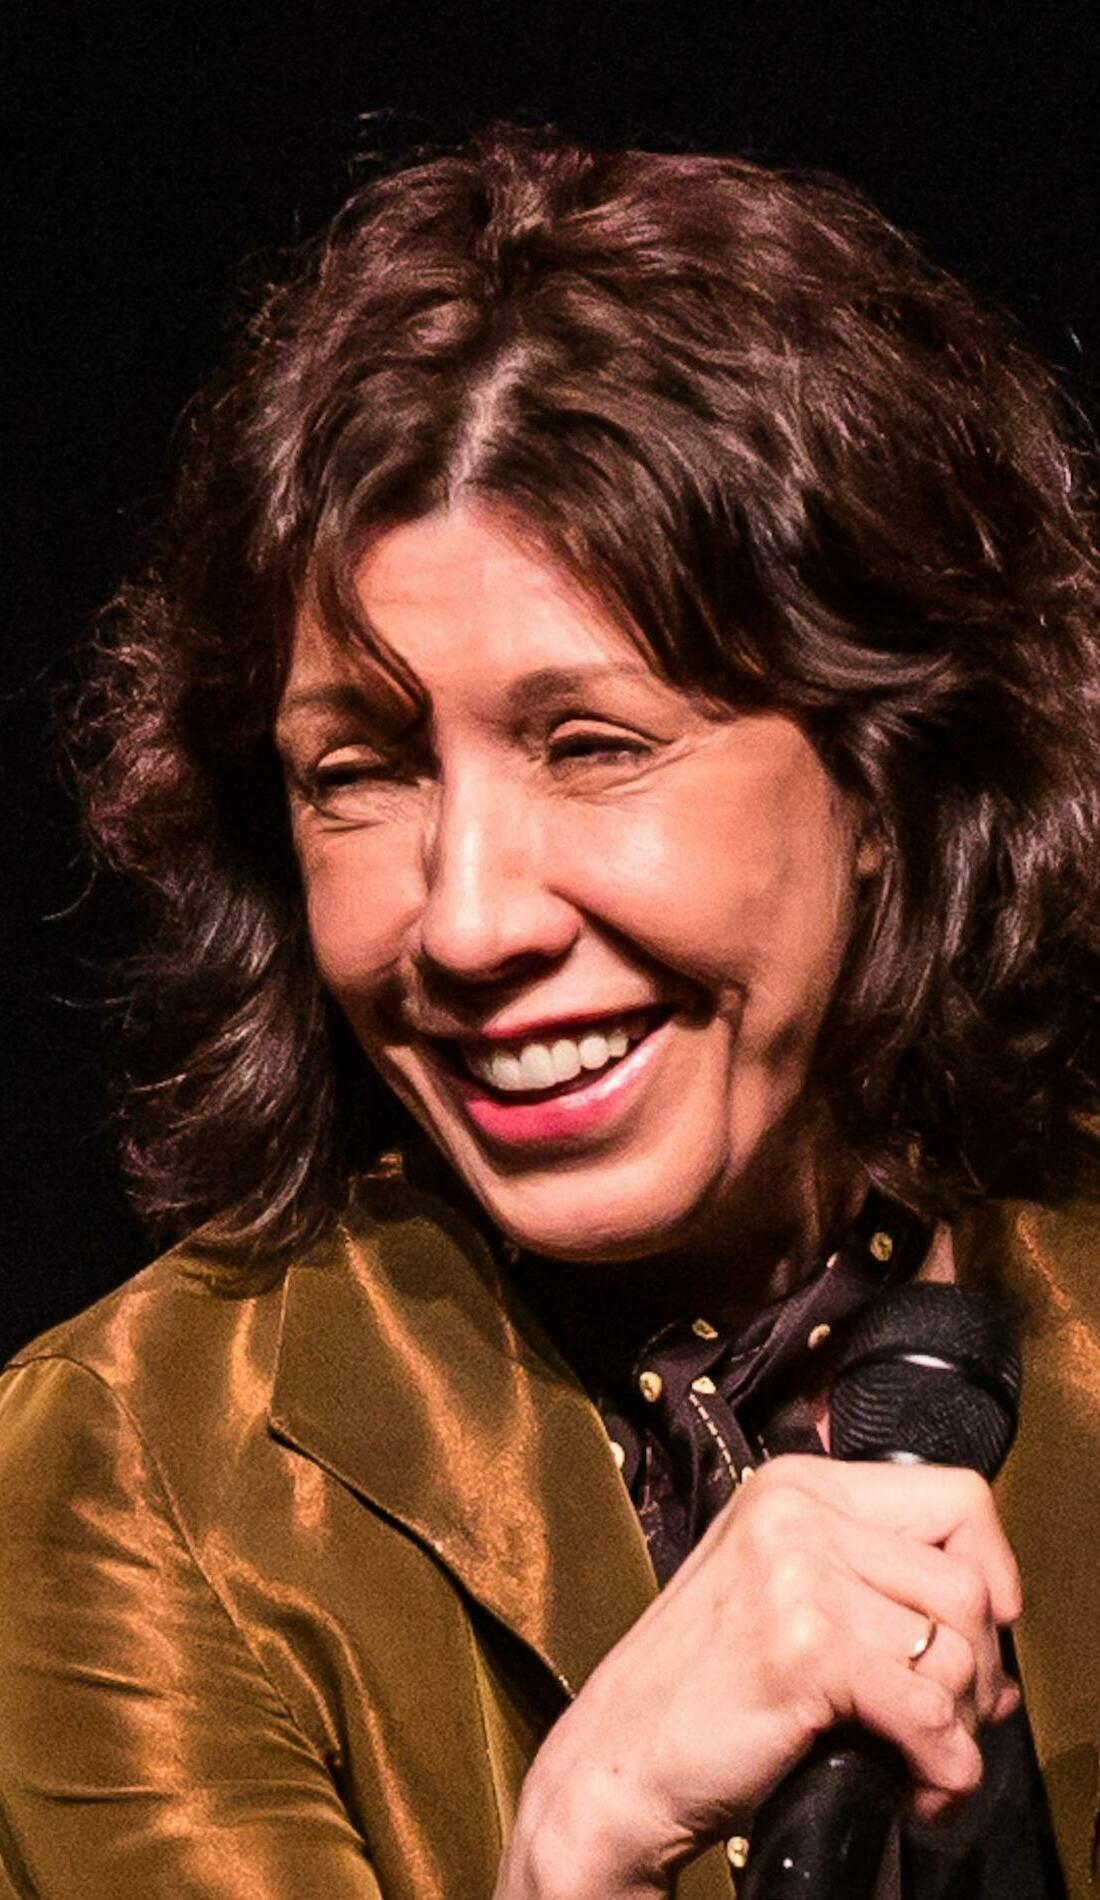 A Lily Tomlin live event